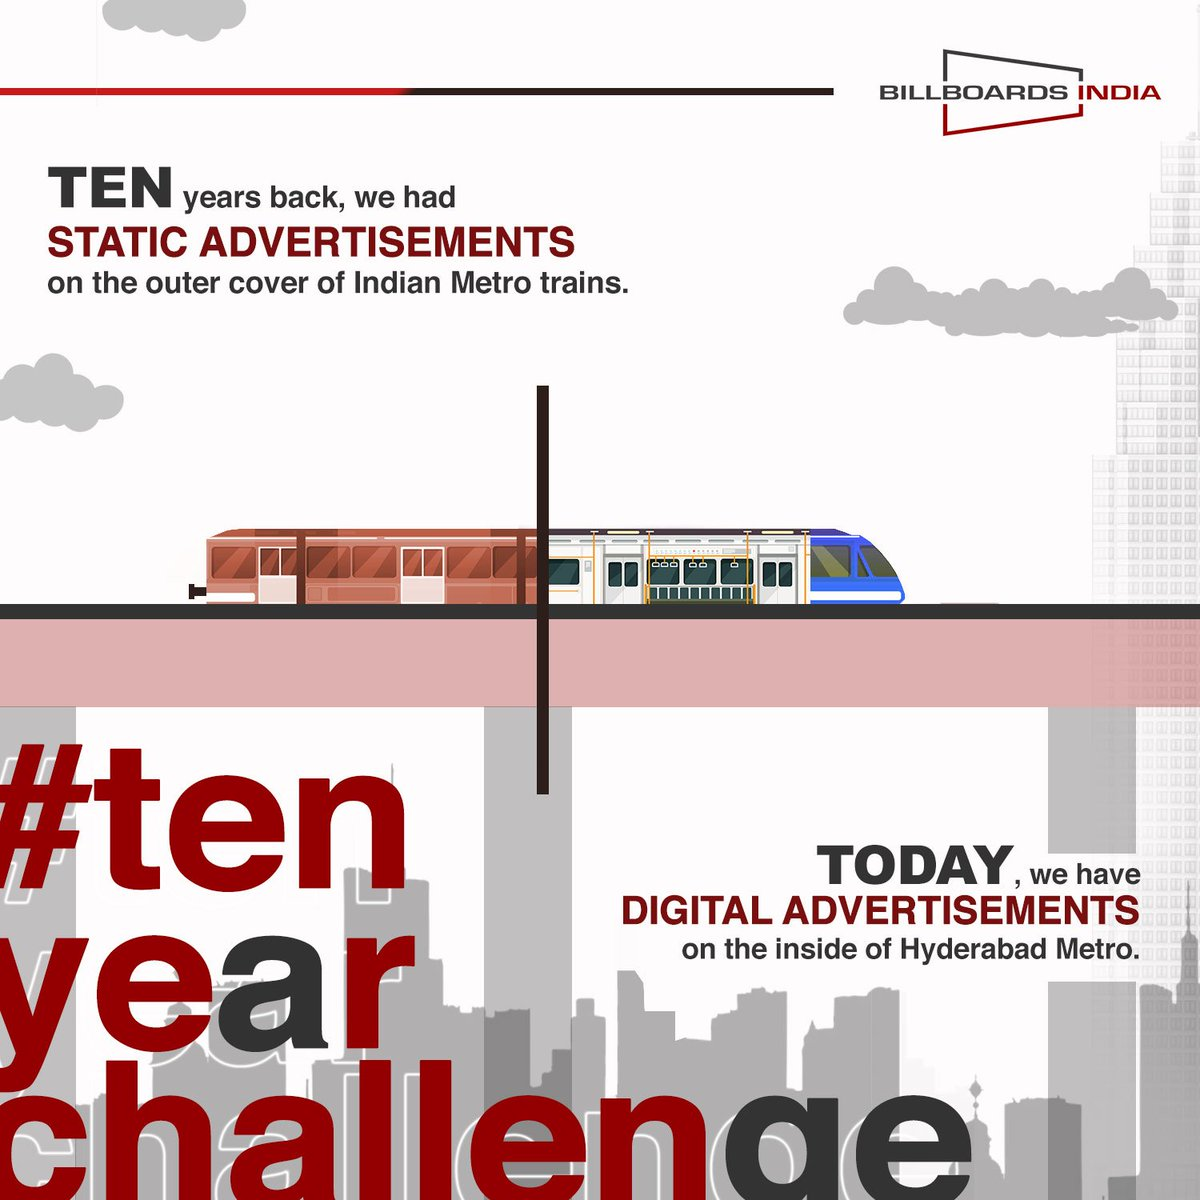 #10yearschallenge  Now You can #Advertise your #brand on the Digital Screens inside Metro Trains Of Hyderabad!! Contact 9550224488 or reach us at http://www.billboardsindia.com  #Billboardsindia #metrotrains #insidetrains #metroadvertising #Hyderabad #digitalscreens #Hyderabadmetro